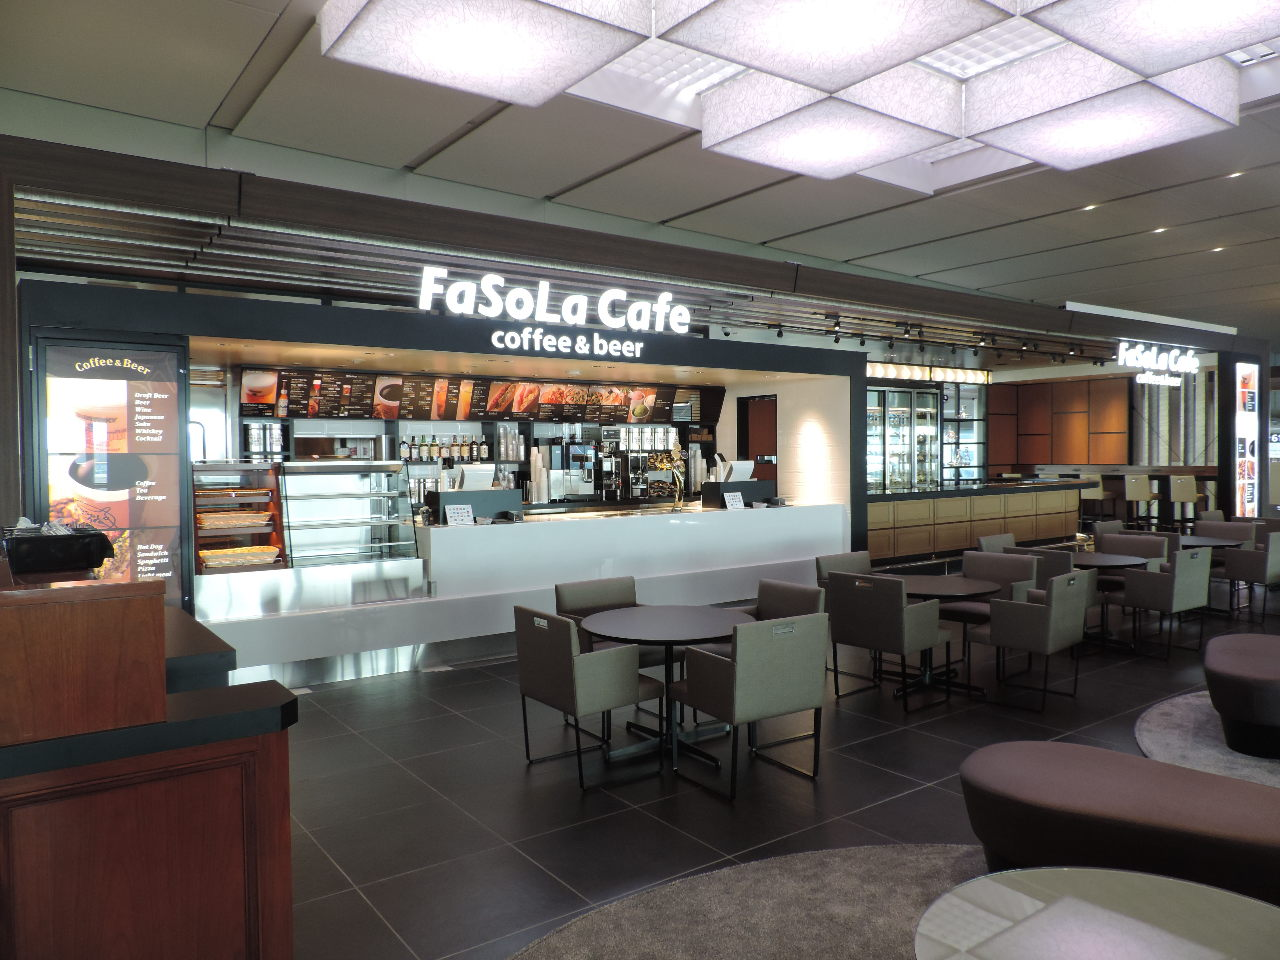 FaSoLa Cafe coffee & beer 成田空港第2ターミナル店